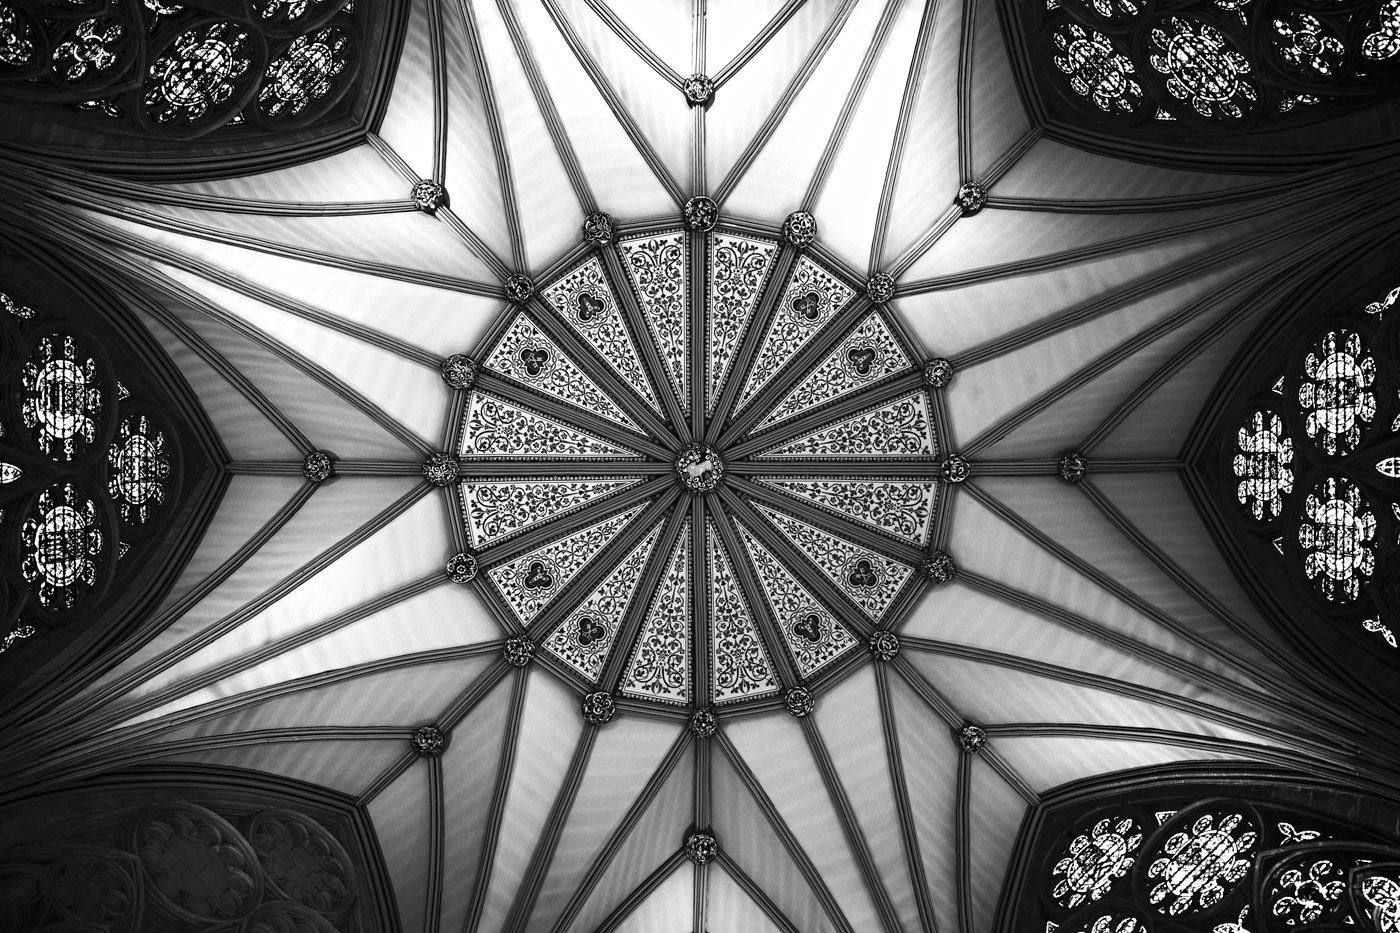 Chapter House ceiling, York Minster, York, England